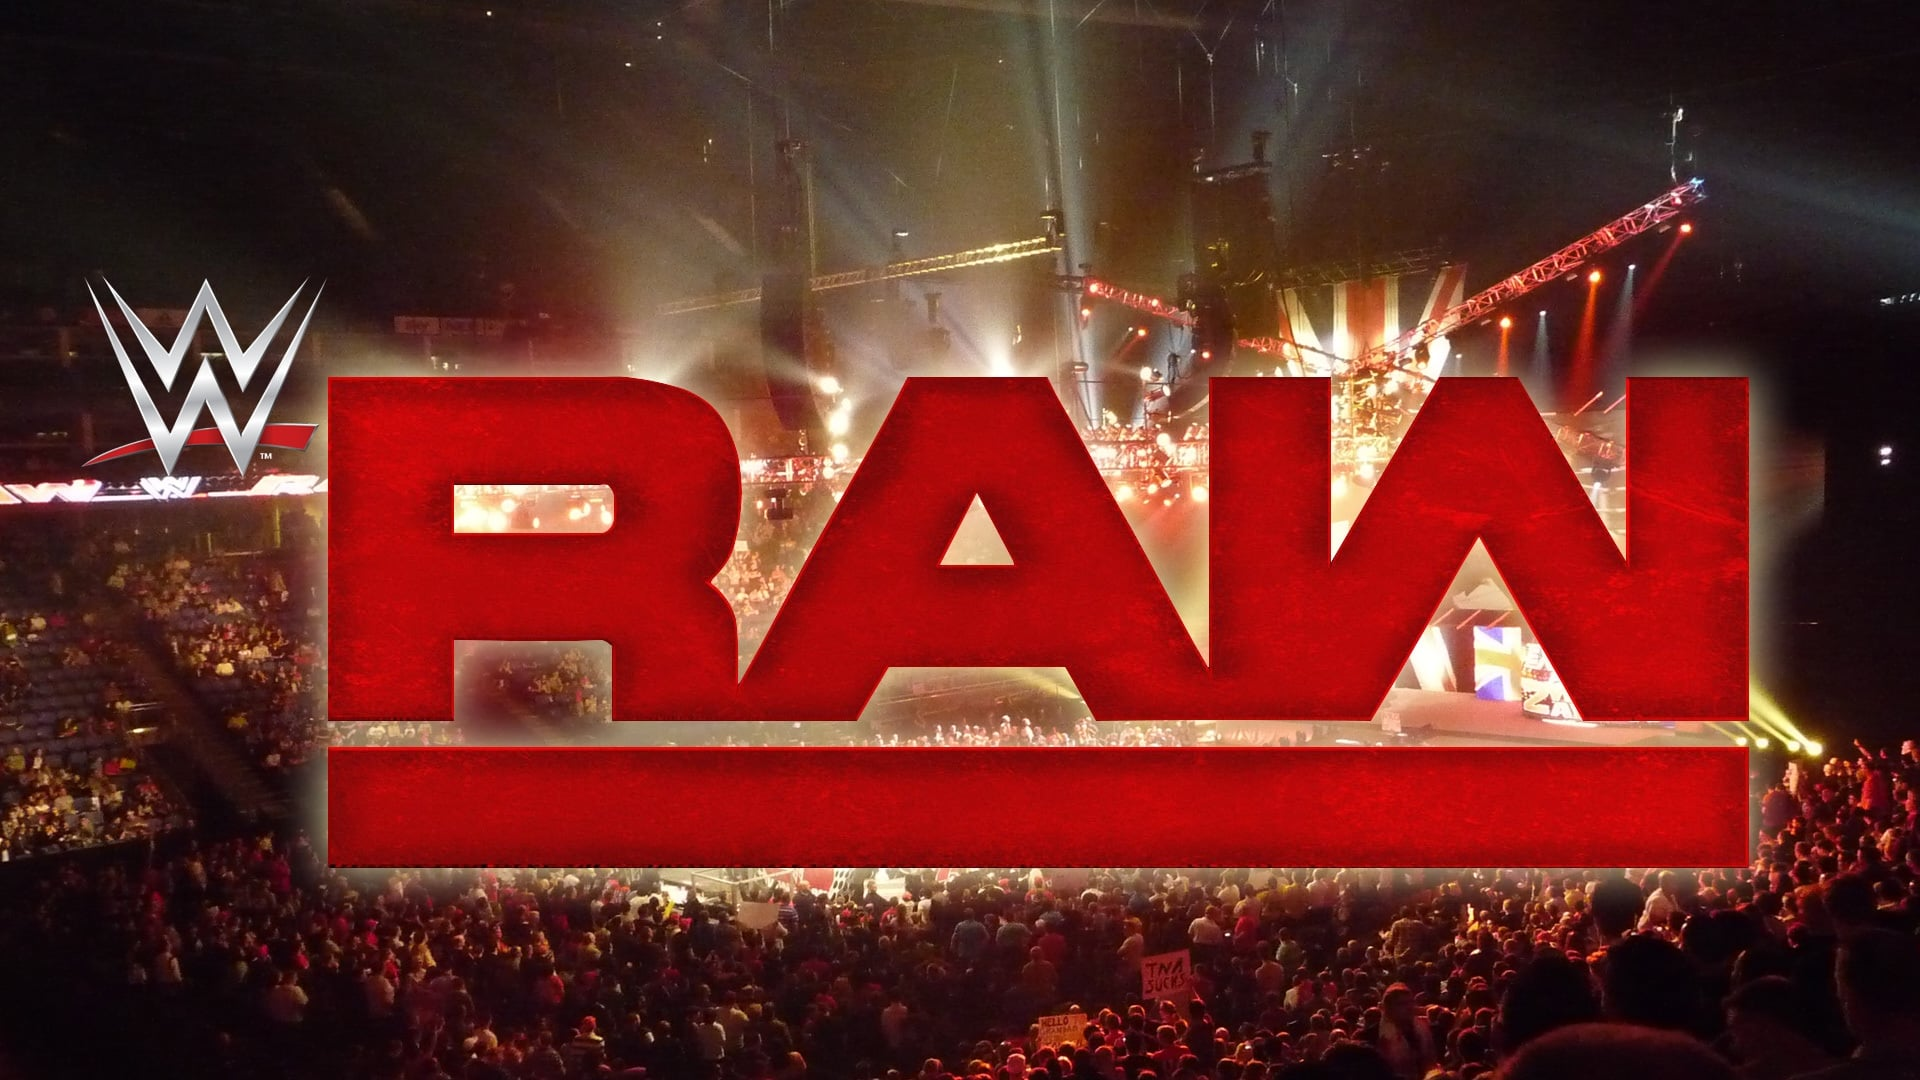 WWE Raw - Season 20 Episode 45 : November 5, 2012